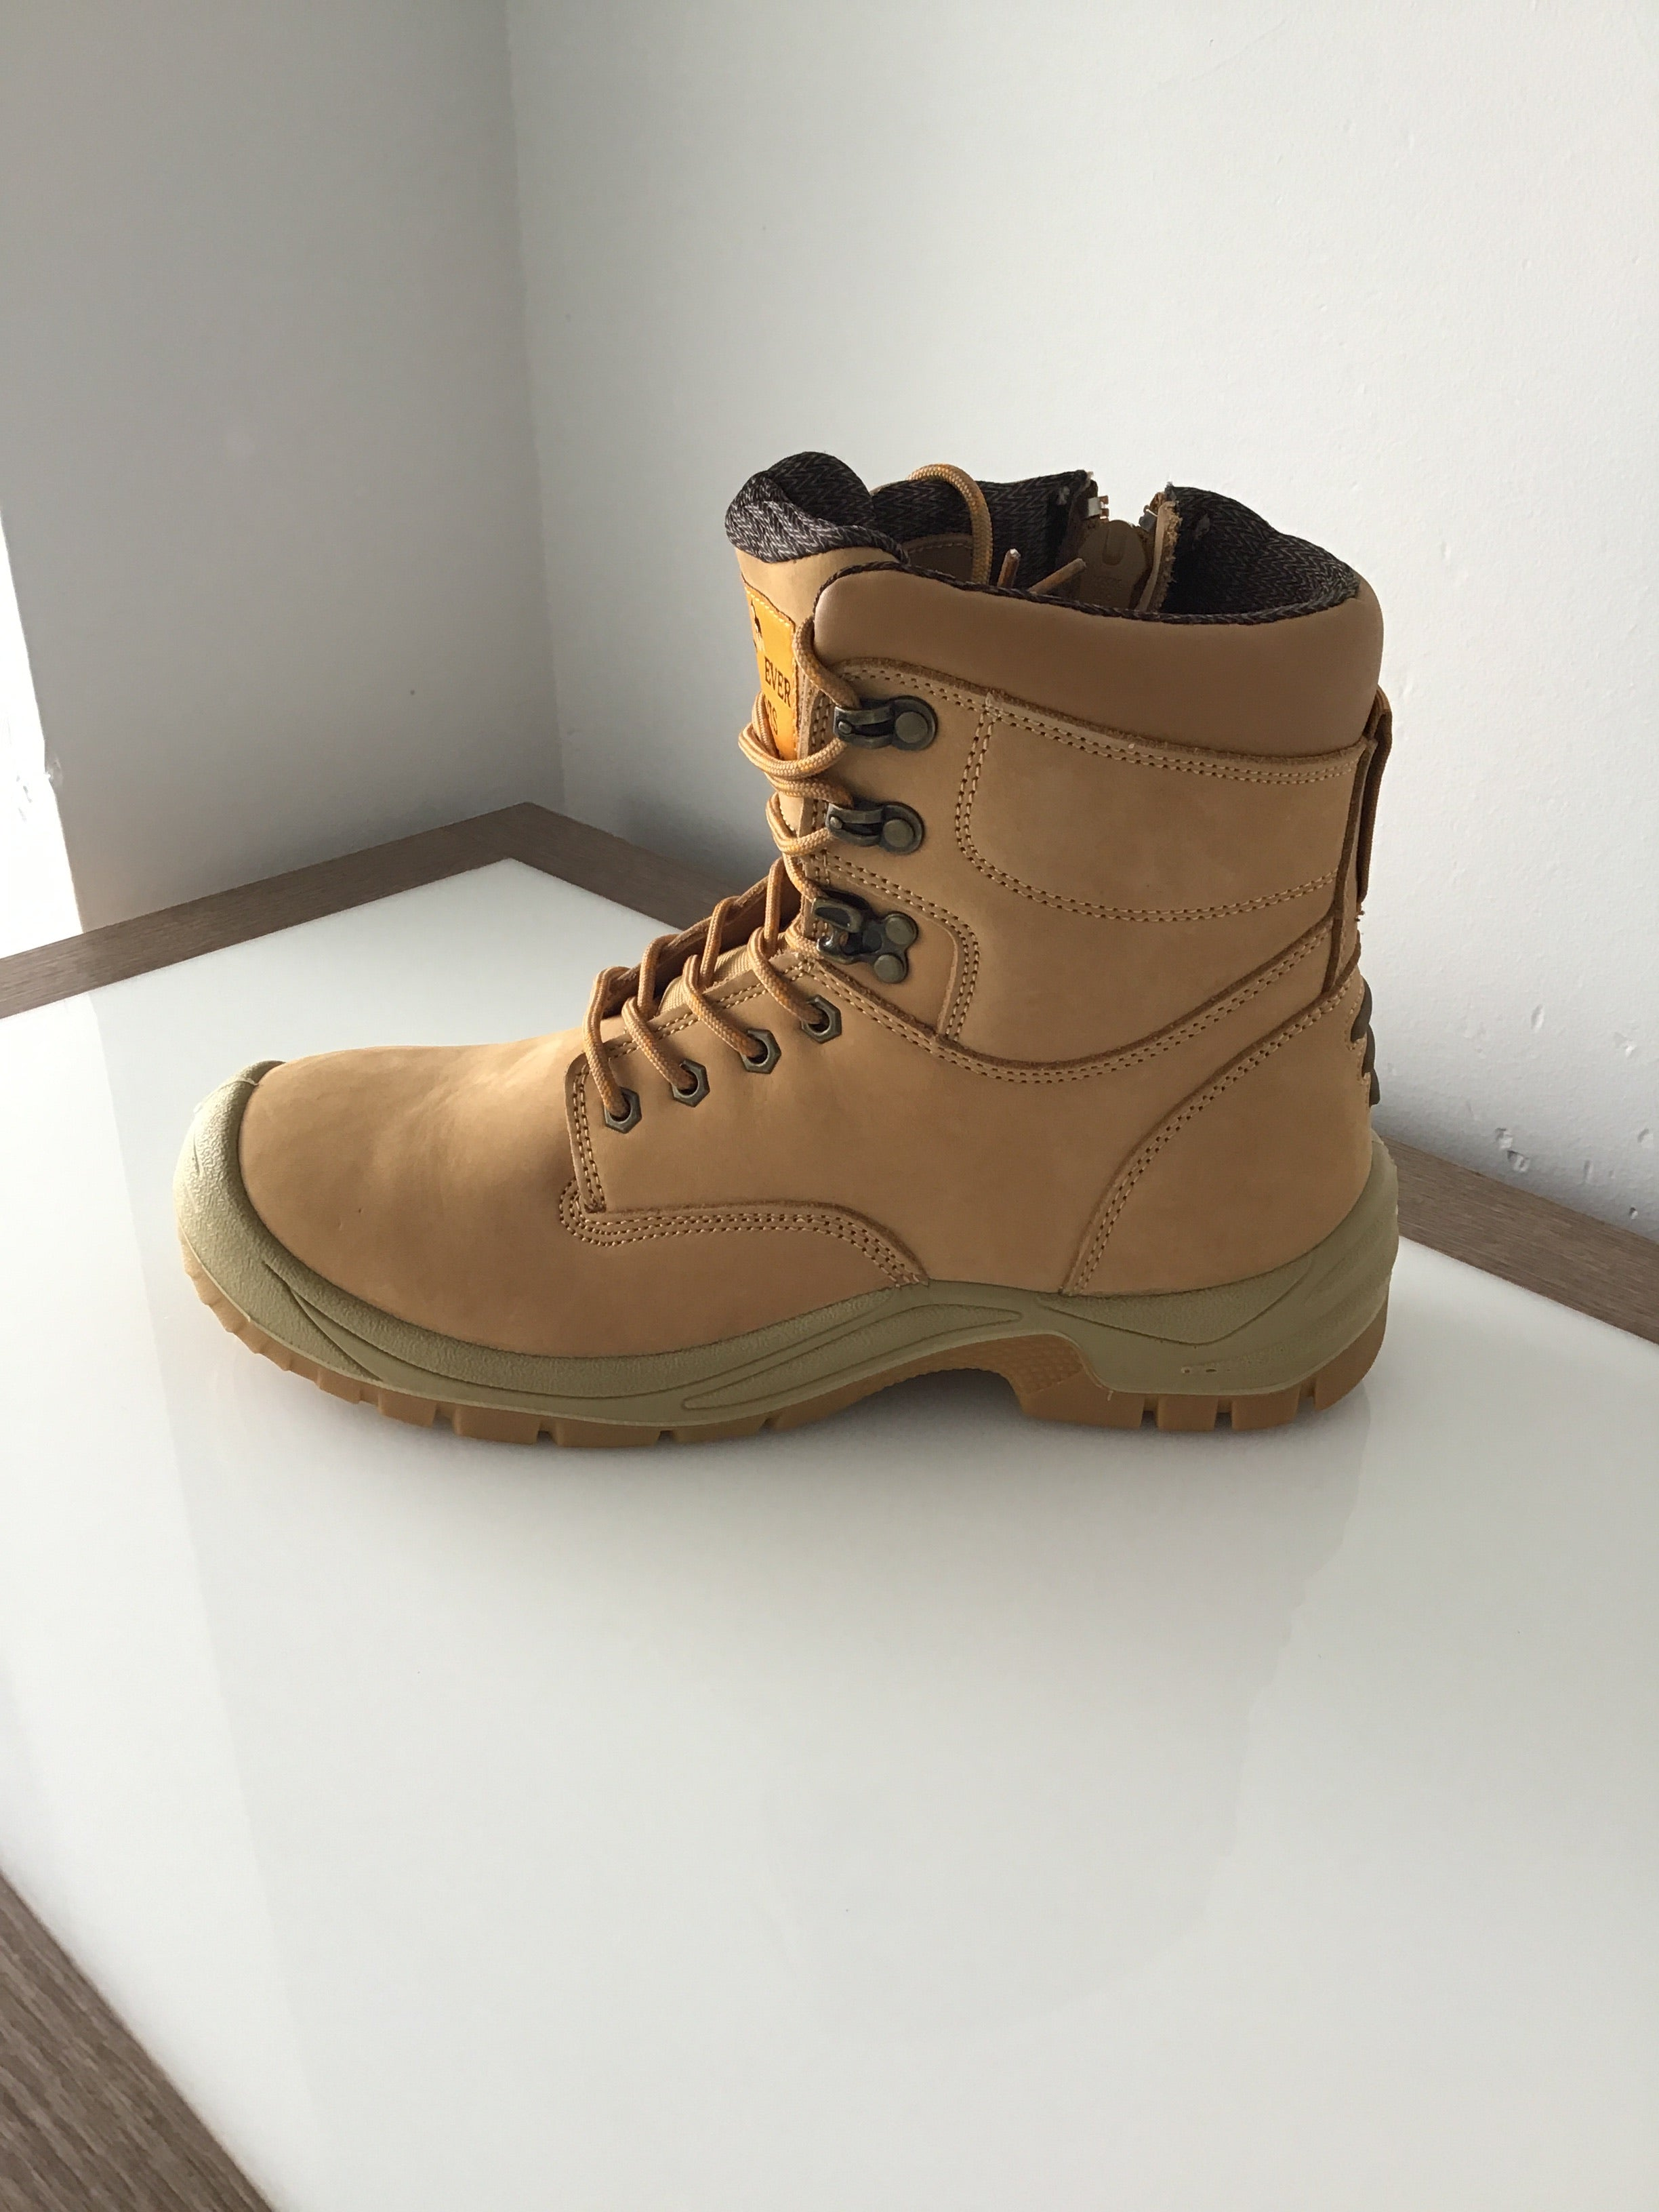 Best Ever Boots - Hawk Safety work boots - steel cap